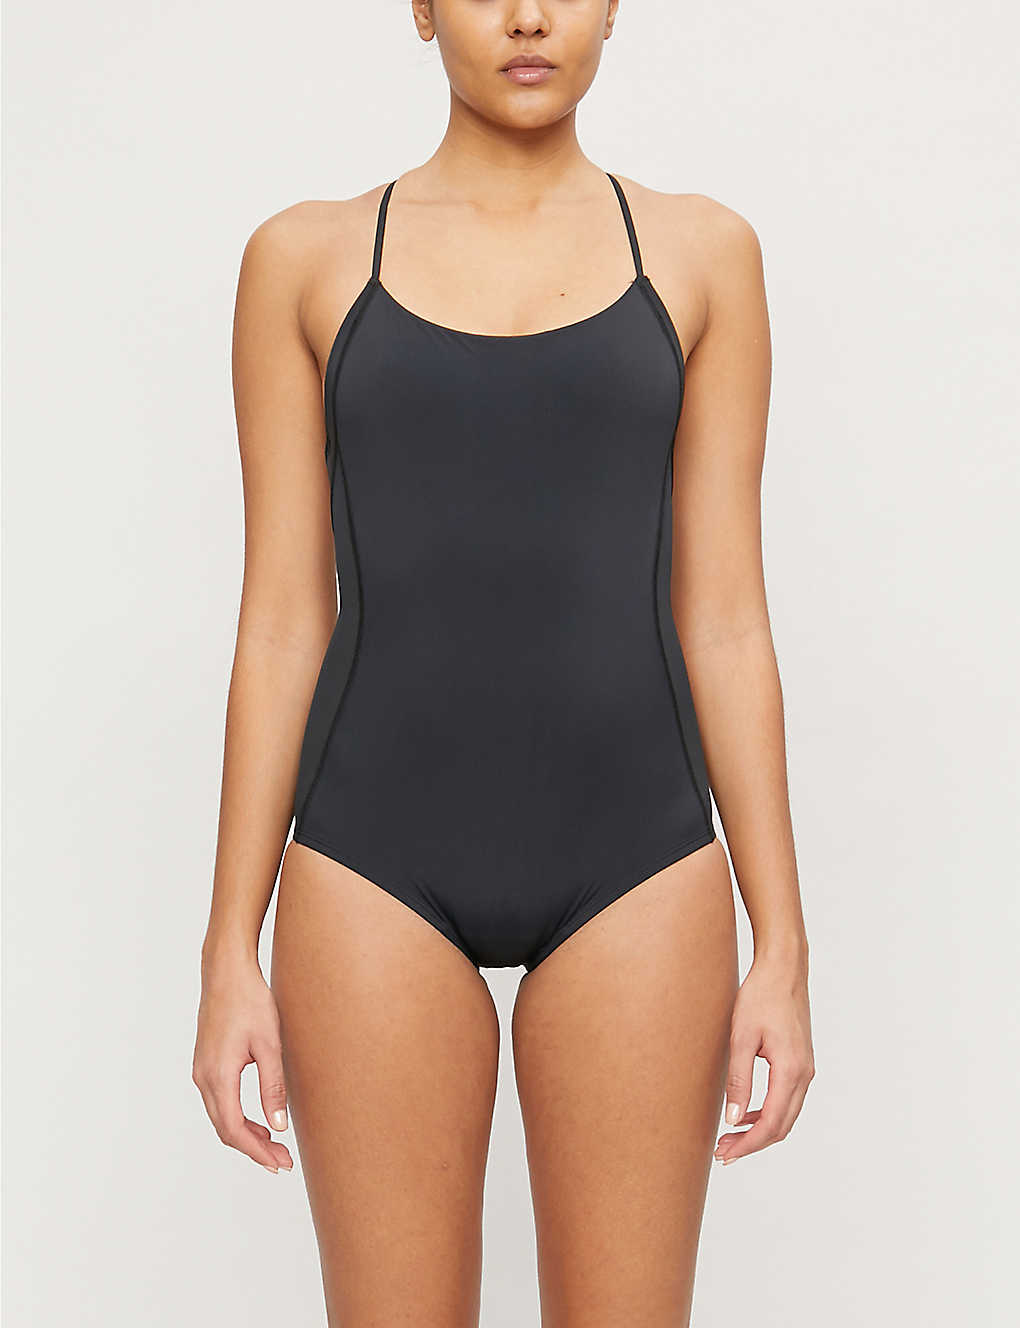 THINX: Semi-sheer panel stretch-woven leotard